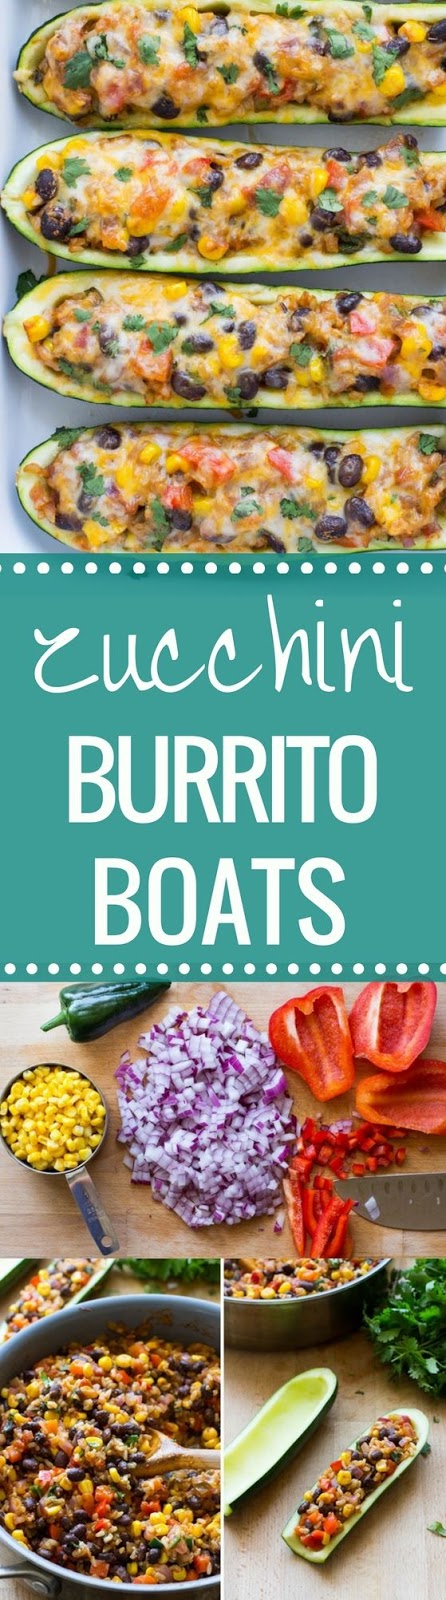 MEXICAN ZUCCHINI BURRITO BOATS #MEXICAN #ZUCCHINI #BURRITO #BOATS  #HEALTHYFOOD #EASYRECIPES #DINNER #LAUCH #DELICIOUS #EASY #HOLIDAYS #RECIPE #DESSERTS #SPECIALDIET #WORLDCUISINE #CAKE #APPETIZERS #HEALTHYRECIPES #DRINKS #COOKINGMETHOD #ITALIANRECIPES #MEAT #VEGANRECIPES #COOKIES #PASTA #FRUIT #SALAD #SOUPAPPETIZERS #NONALCOHOLICDRINKS #MEALPLANNING #VEGETABLES #SOUP #PASTRY #CHOCOLATE #DAIRY #ALCOHOLICDRINKS #BULGURSALAD #BAKING #SNACKS #BEEFRECIPES #MEATAPPETIZERS #MEXICANRECIPES #BREAD #ASIANRECIPES #SEAFOODAPPETIZERS #MUFFINS #BREAKFASTANDBRUNCH #CONDIMENTS #CUPCAKES #CHEESE #CHICKENRECIPES #PIE #COFFEE #NOBAKEDESSERTS #HEALTHYSNACKS #SEAFOOD #GRAIN #LUNCHESDINNERS #MEXICAN #QUICKBREAD #LIQUOR